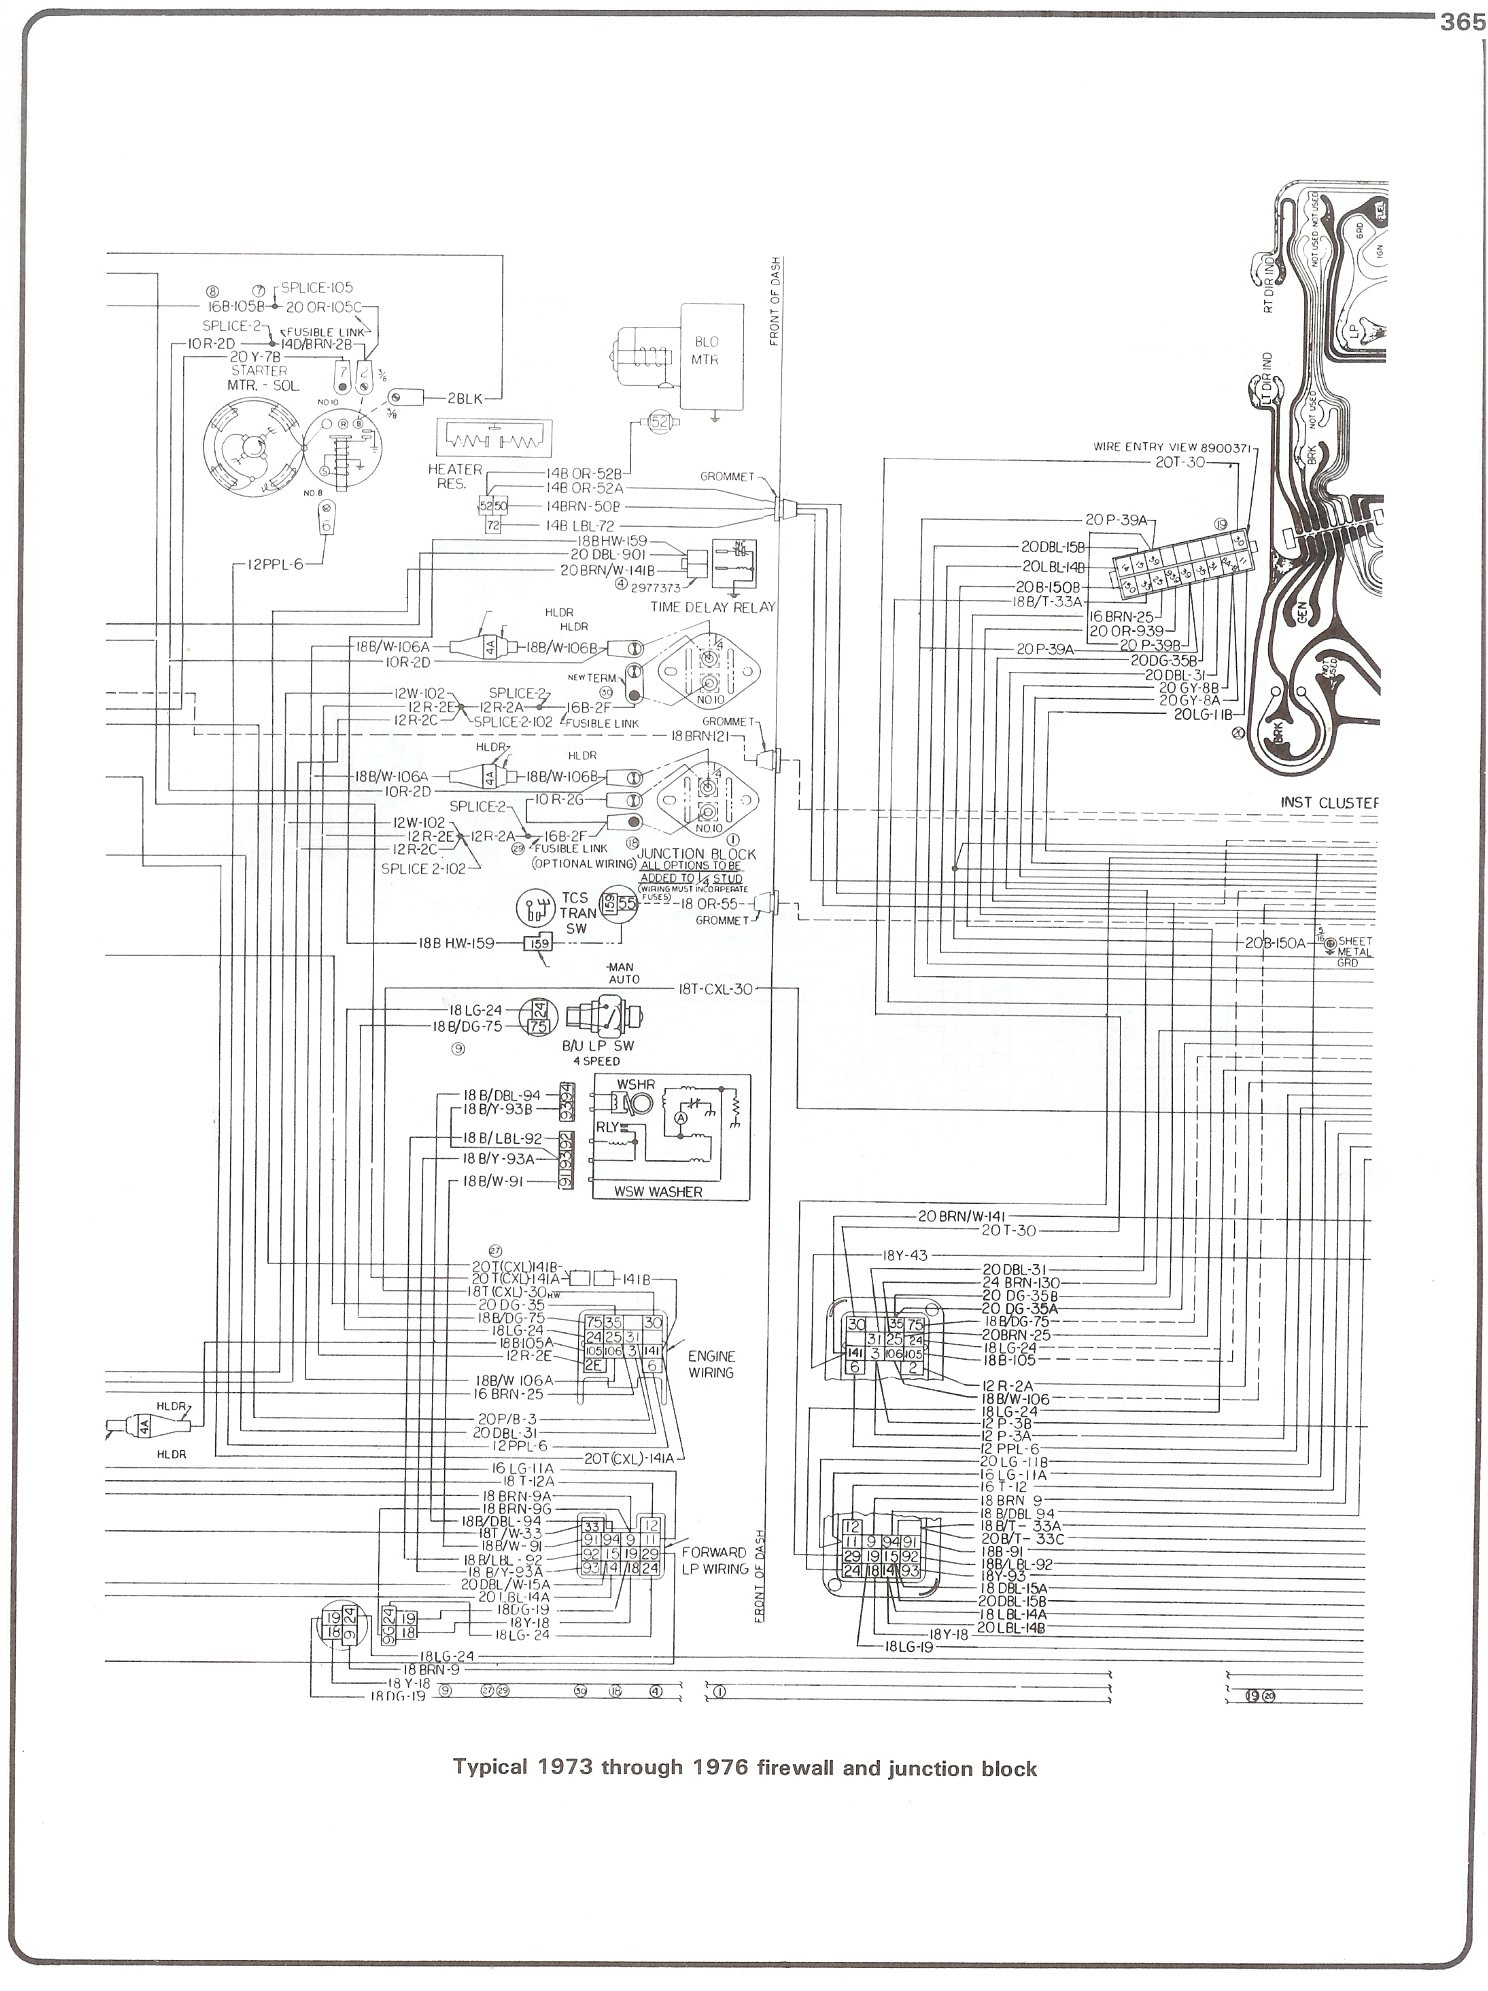 1984 S15 Ignition Coil Wiring Harness Diagram Will Be A Thing Gm Pack Complete 73 87 Diagrams Rh Forum 87chevytrucks Com Honda Ct70 Switch Ford